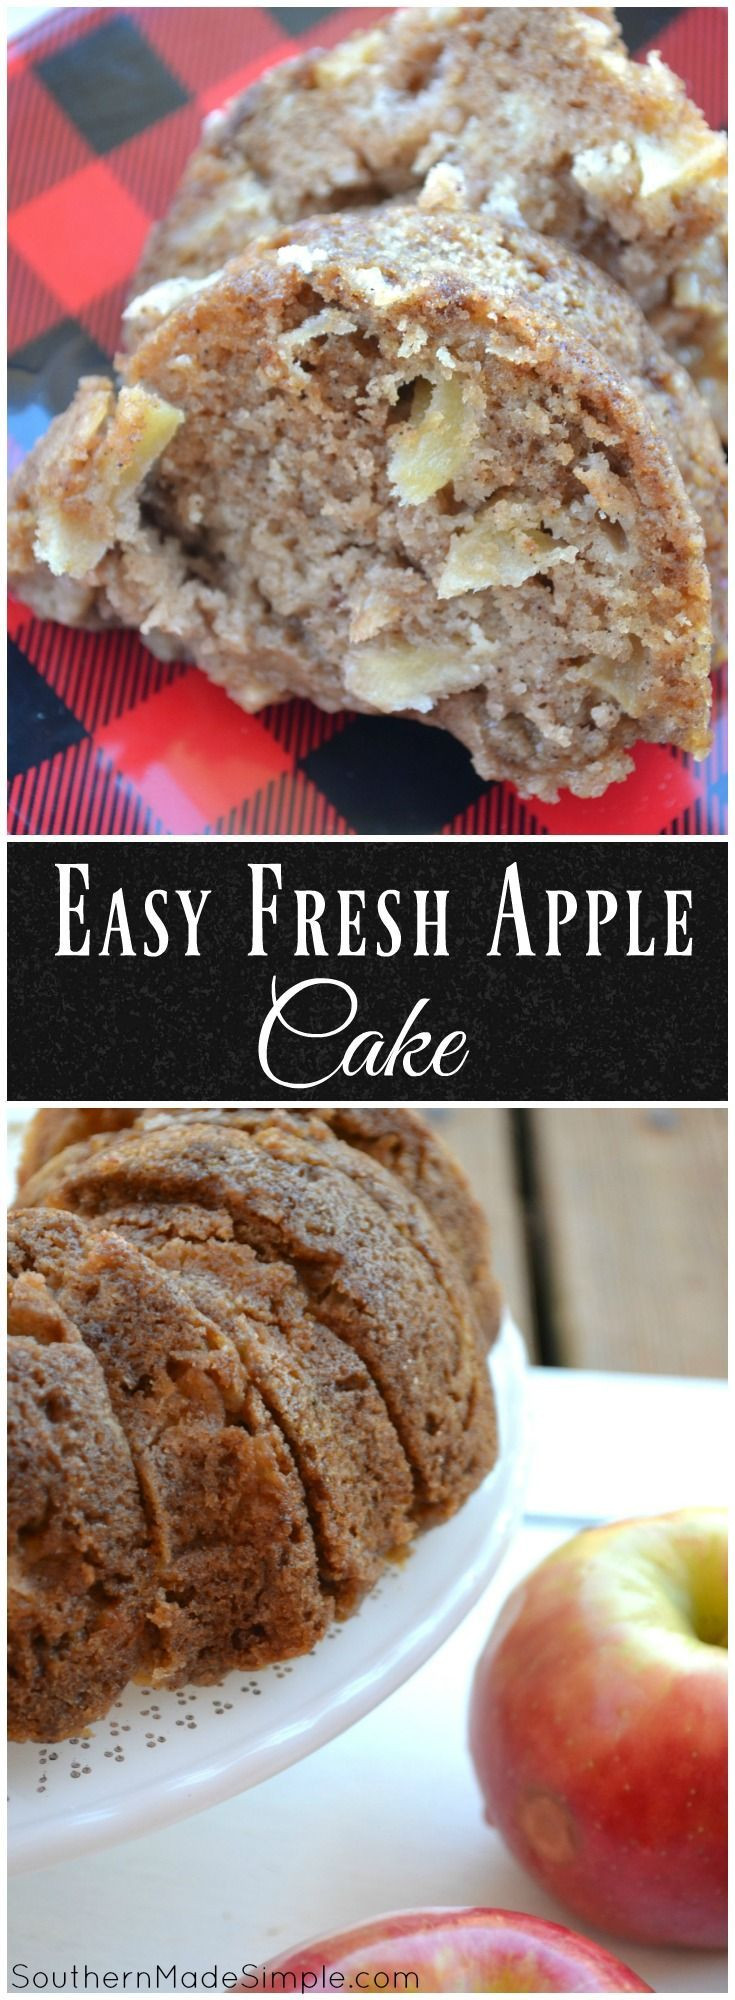 Healthy Apple Cake Recipes With Fresh Apples  17 Best ideas about Easy Apple Cake on Pinterest